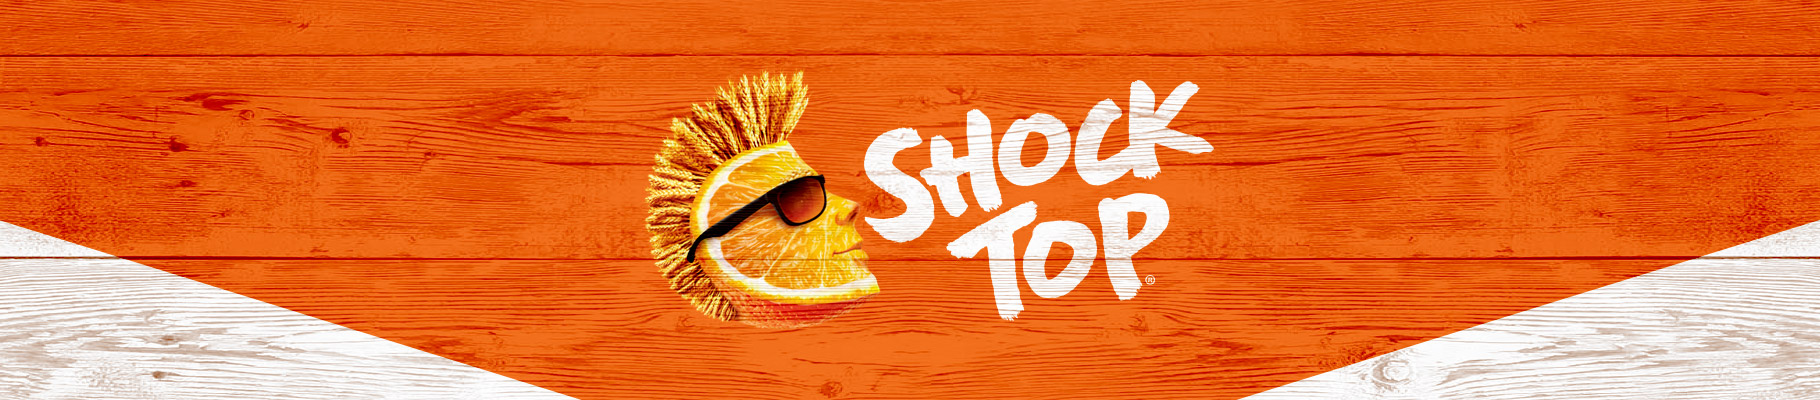 graphic of Shock Top brand wide banner